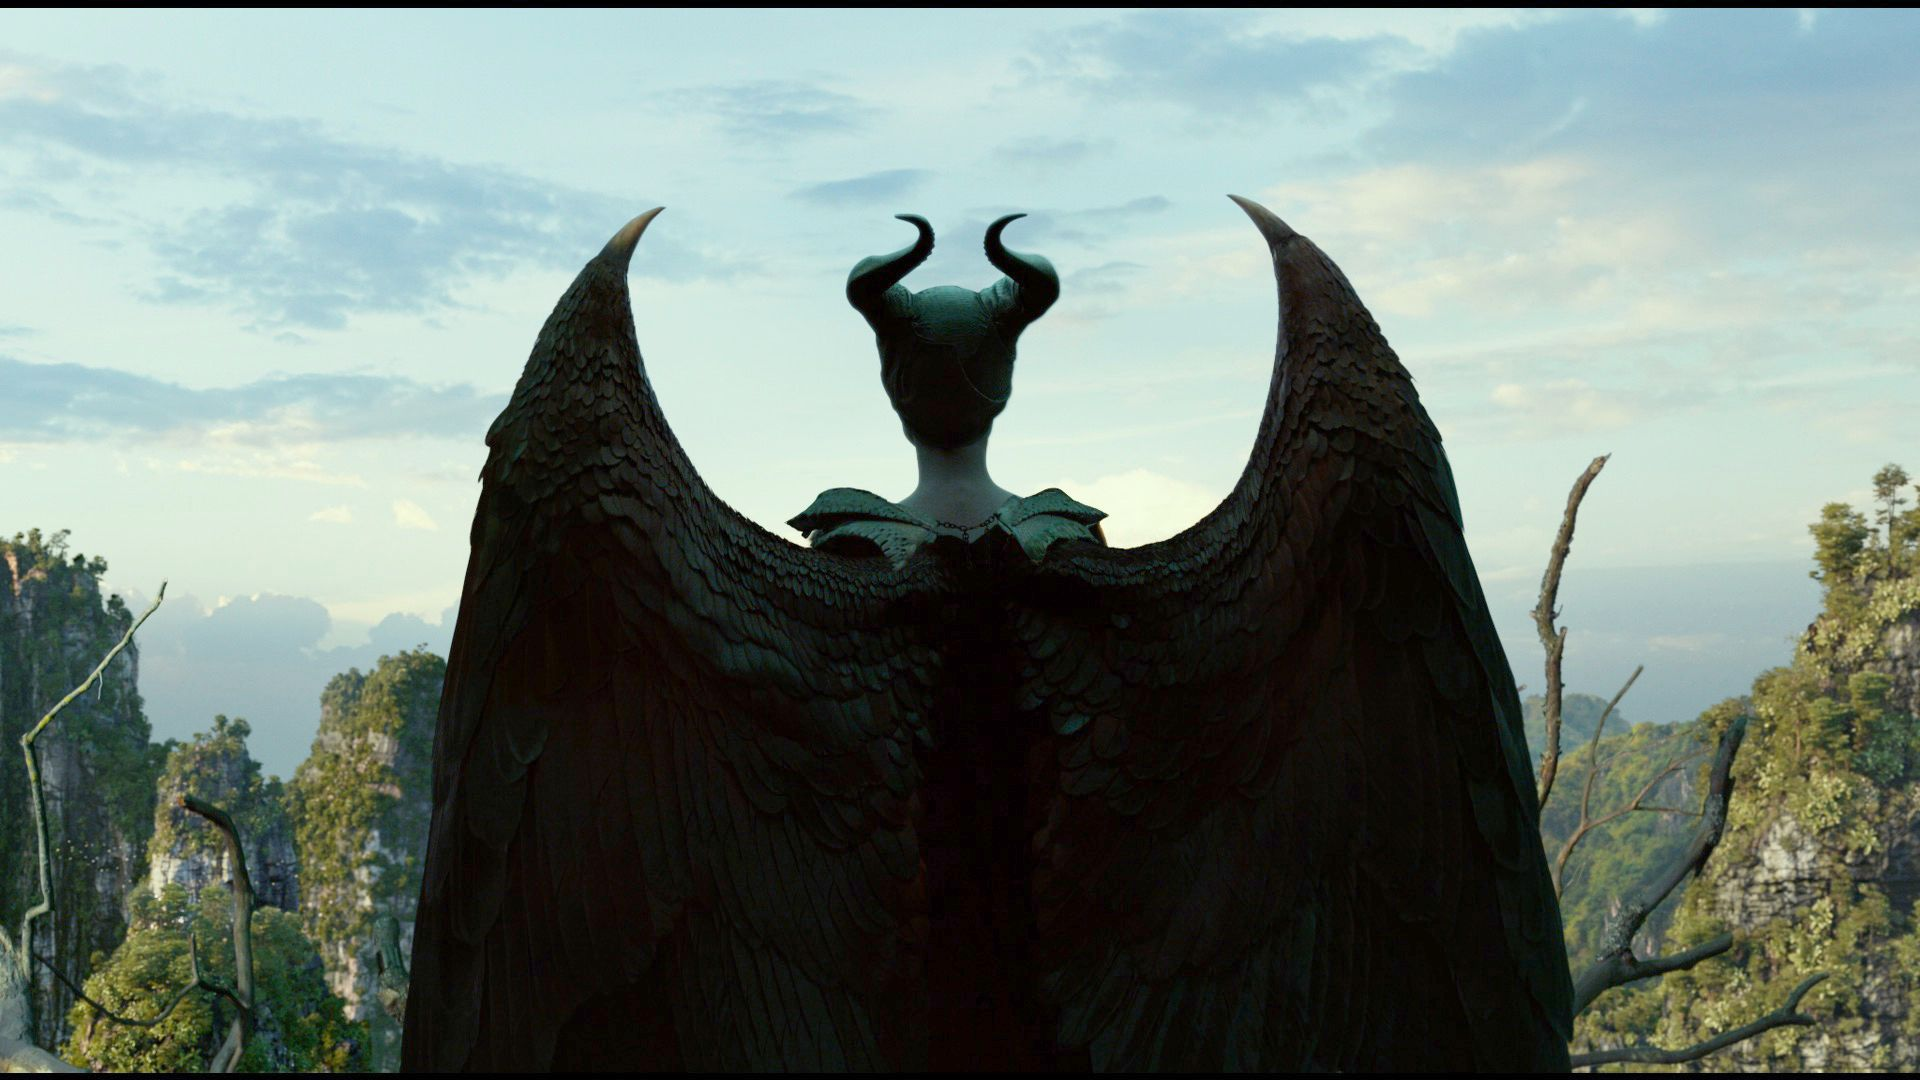 Maleficent 2 Trailer Brings Back Angelina Jolie As The